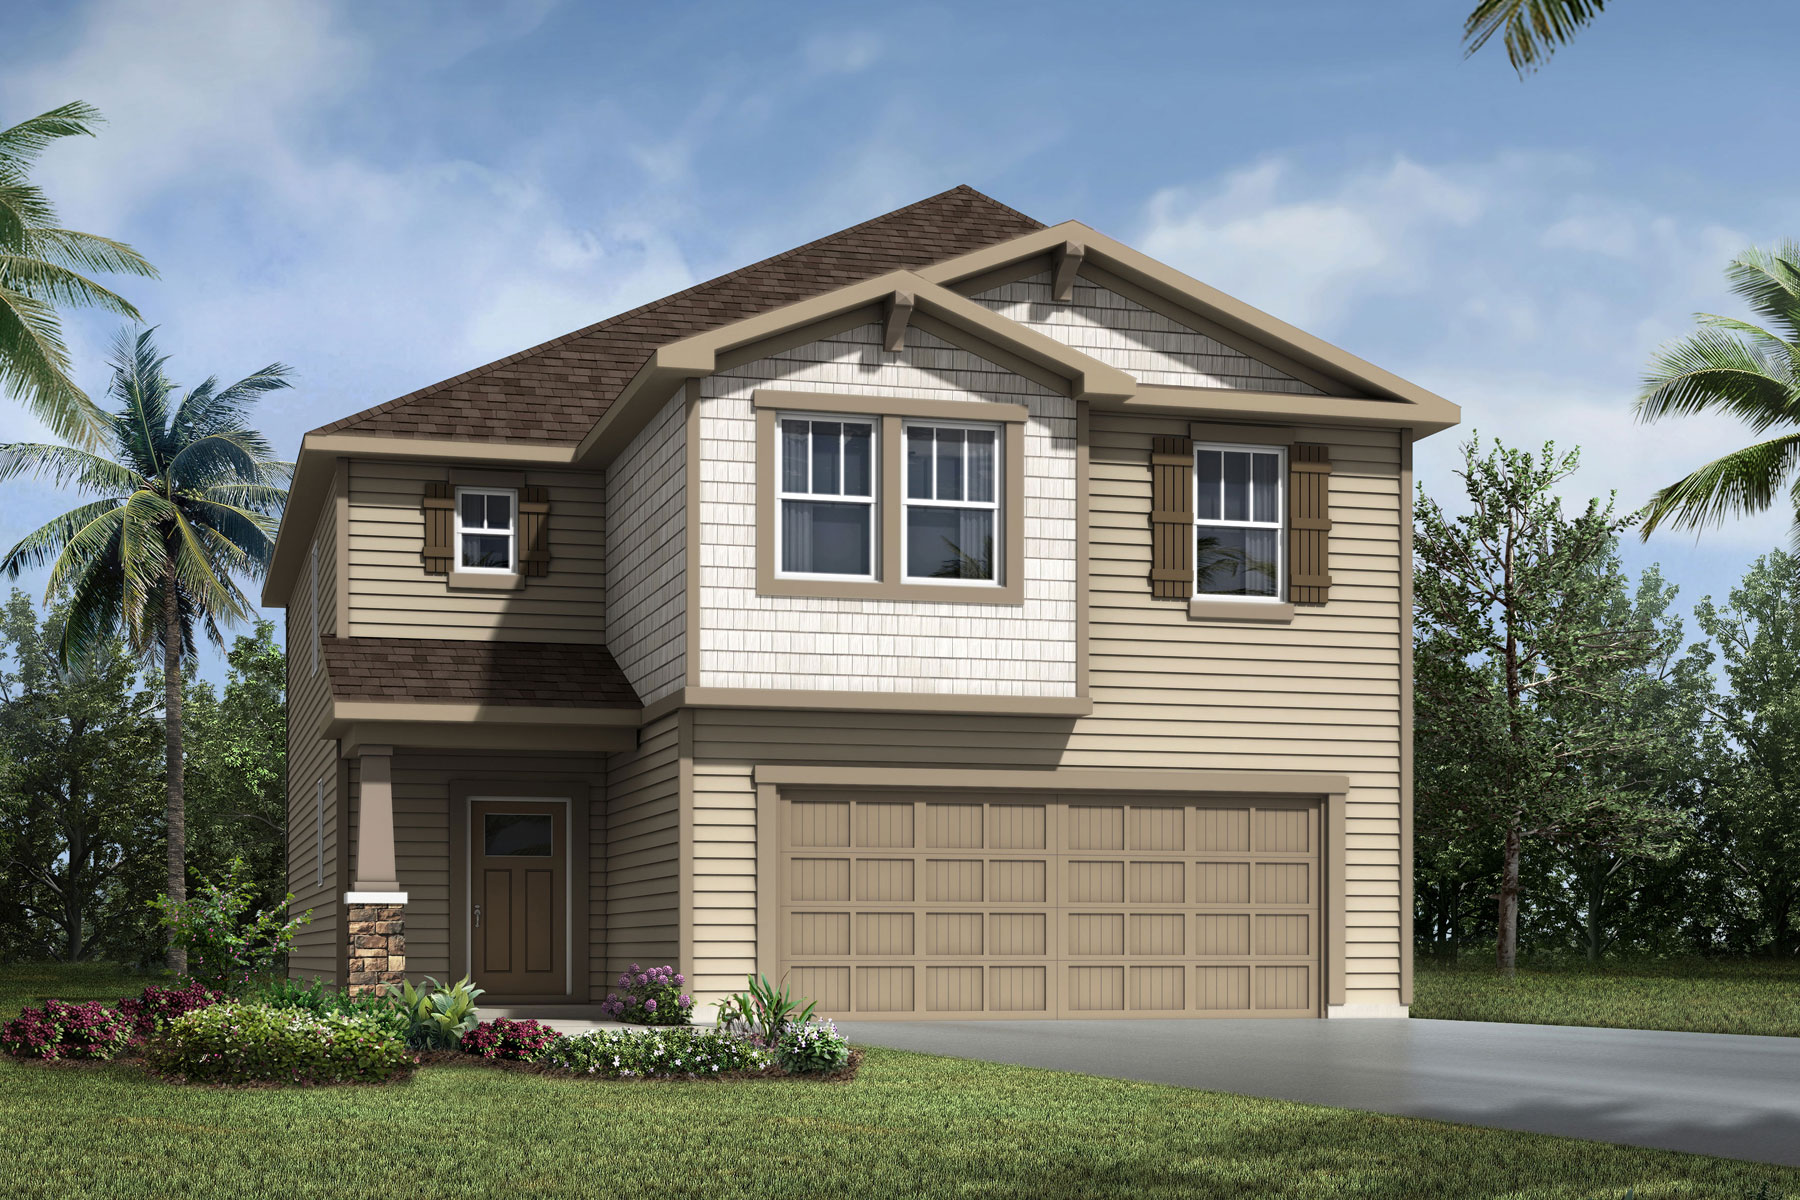 Barron Plan Elevation Front at RiverTown - Haven in St. Johns Florida by Mattamy Homes